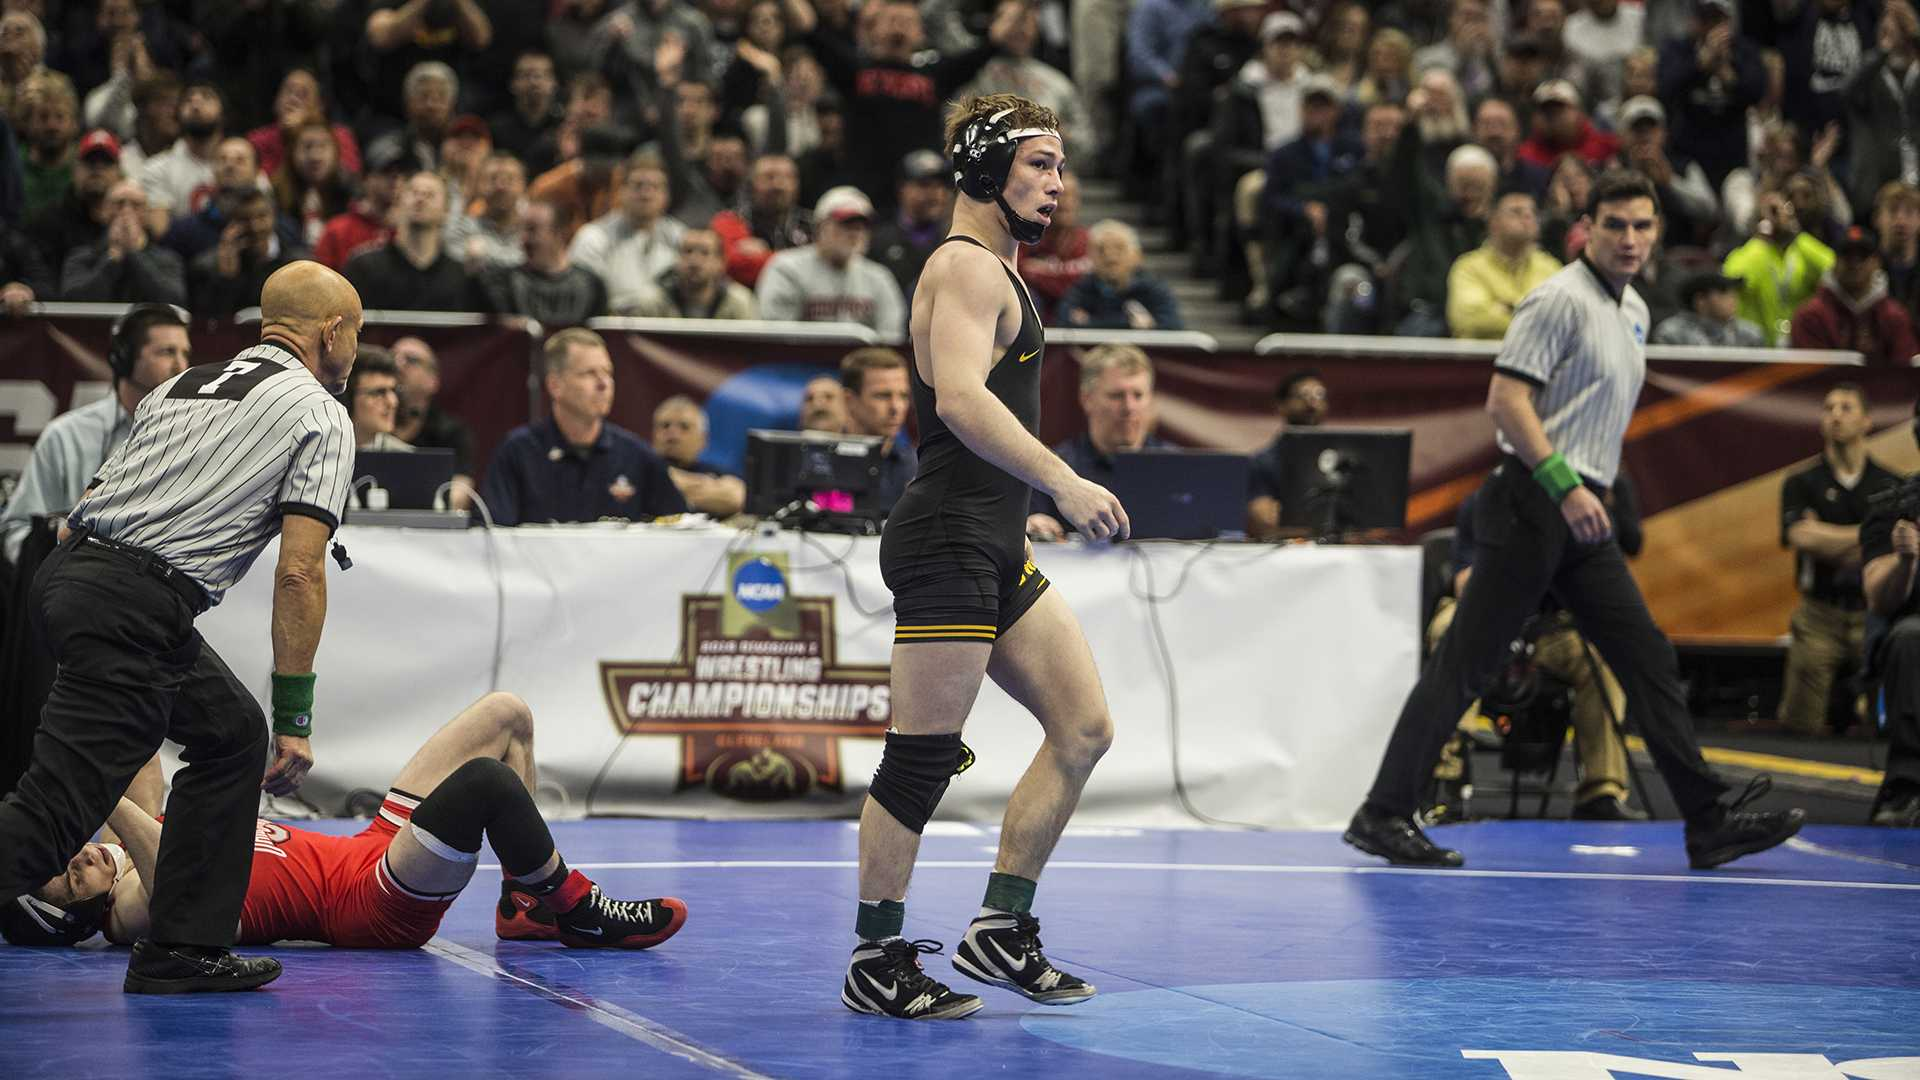 Iowa's 125-pound Spencer Lee defeats Ohio State's Nathan Tomasello in the semifinal bout of Session 4 of the NCAA Wrestling Championships at Quicken Loans Arena in Cleveland, OH on Thursday, March 16, 2018. Lee won by fall in 6:05. (Ben Allan Smith/The Daily Iowan)